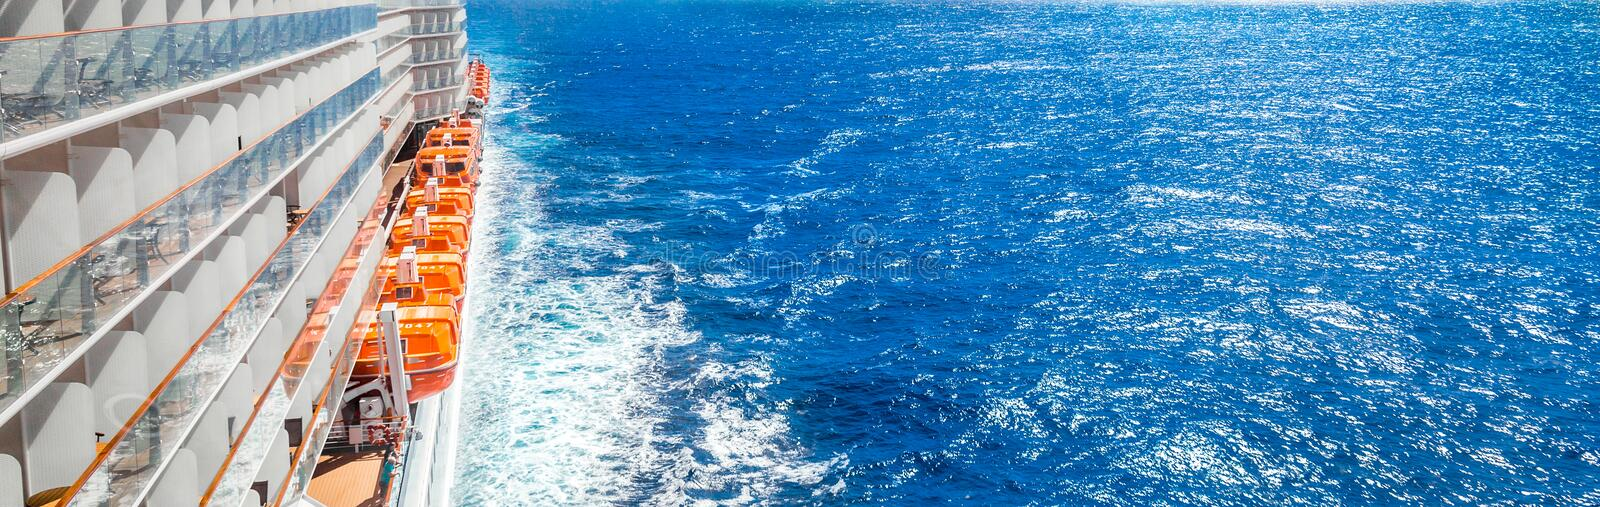 Cruise Ship On Blue Ocean Stock Image Image Of Caribbean